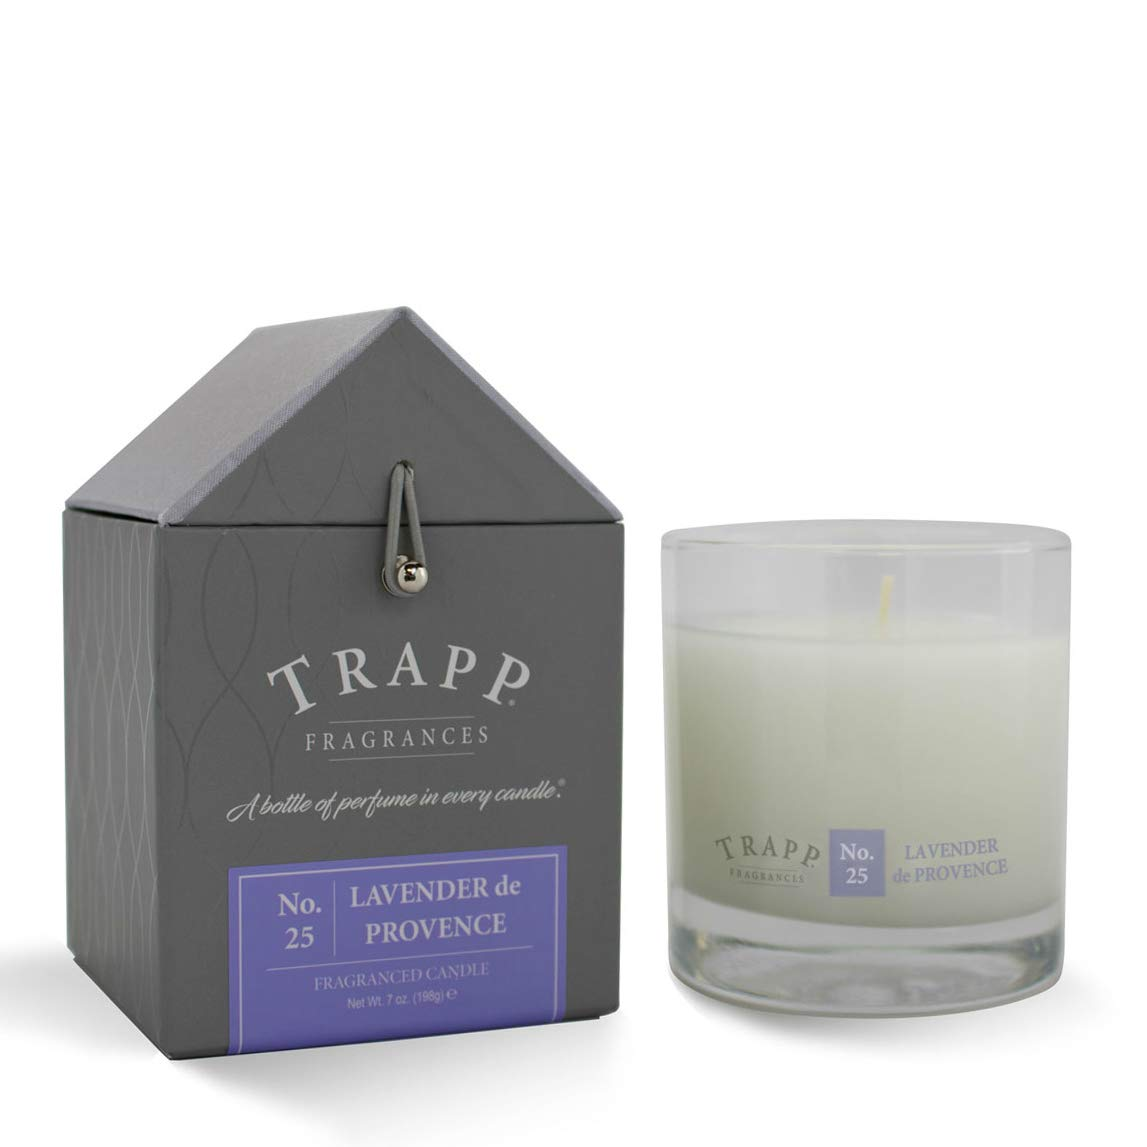 Trapp Signature Home Collection No. 25 Lavender De Provence Poured Scented Candle, 7-Ounce by Trapp